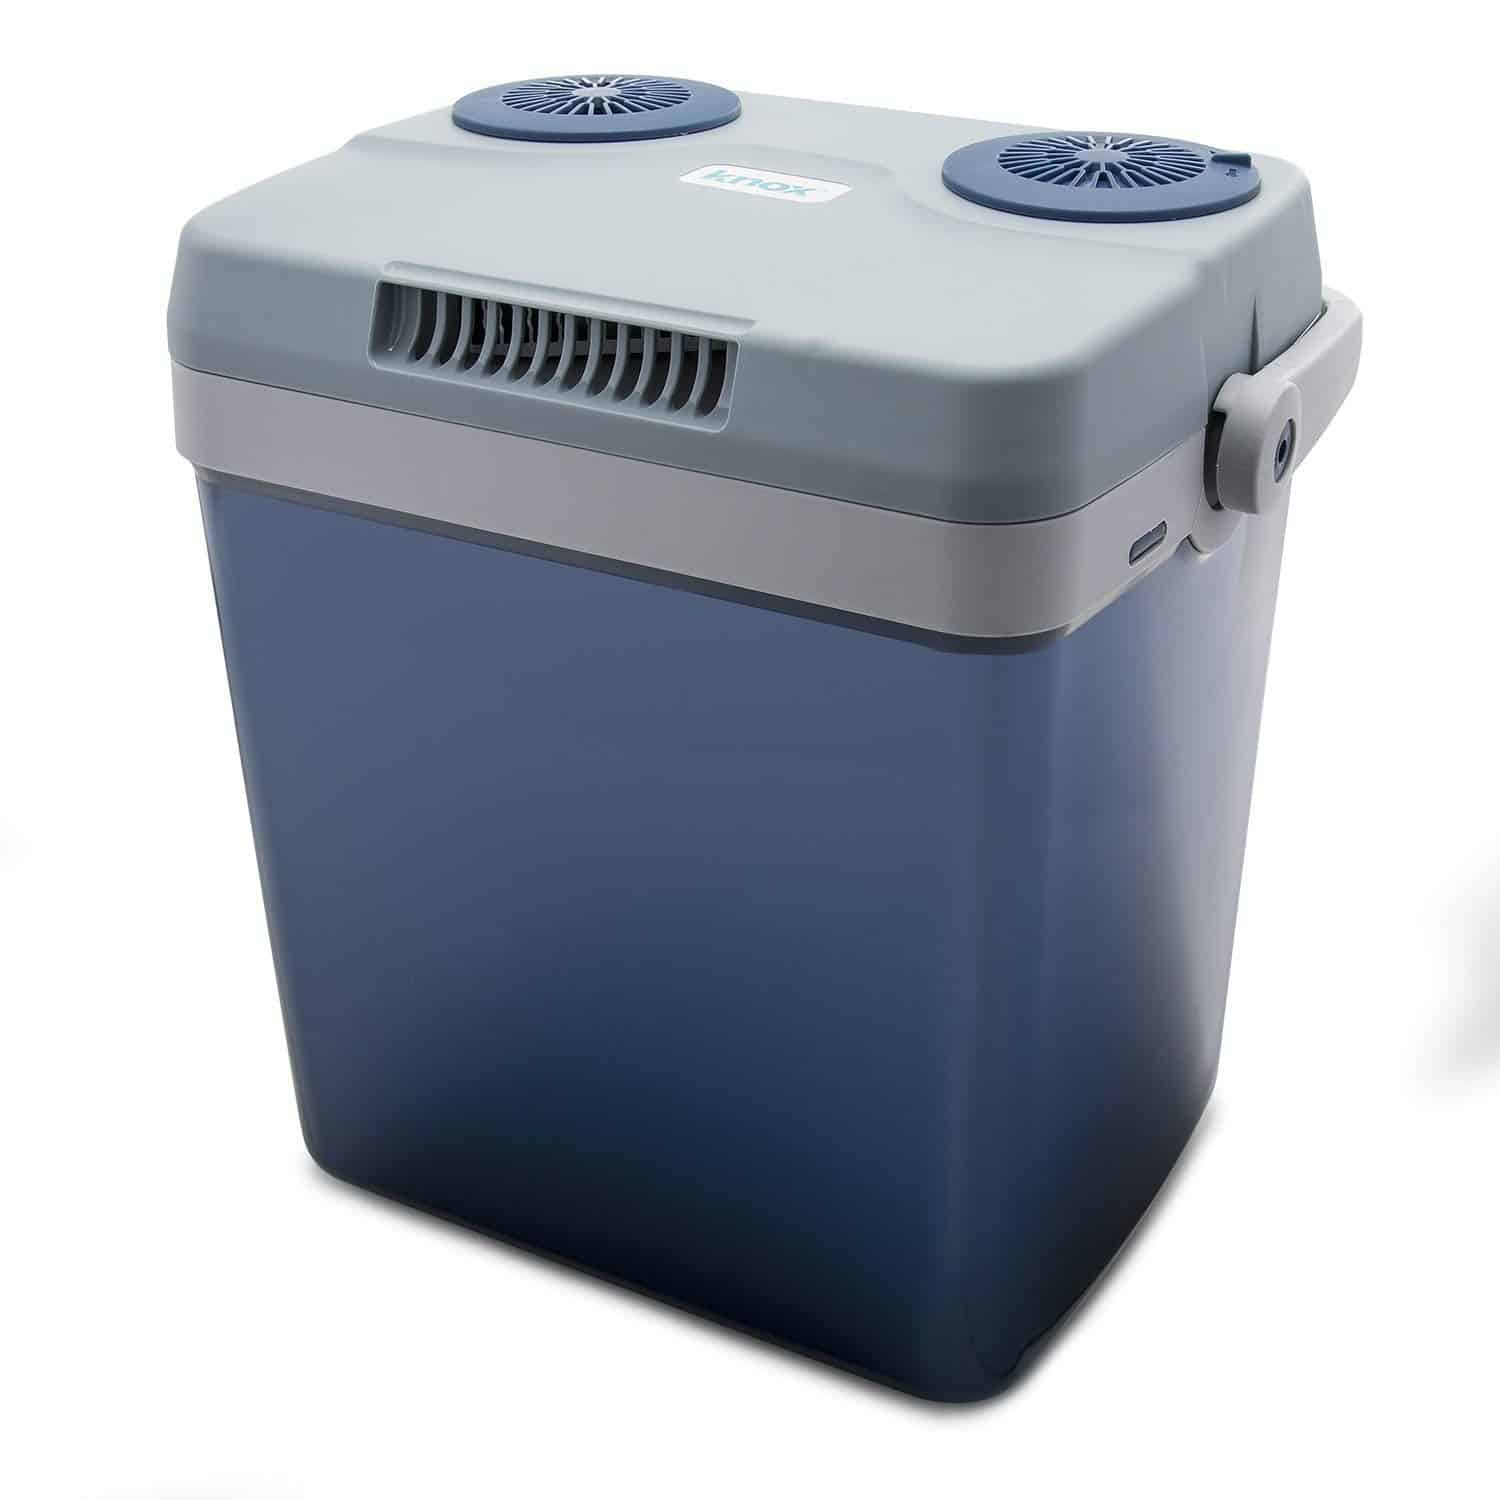 Knox Electric Cooler Automatic Locking